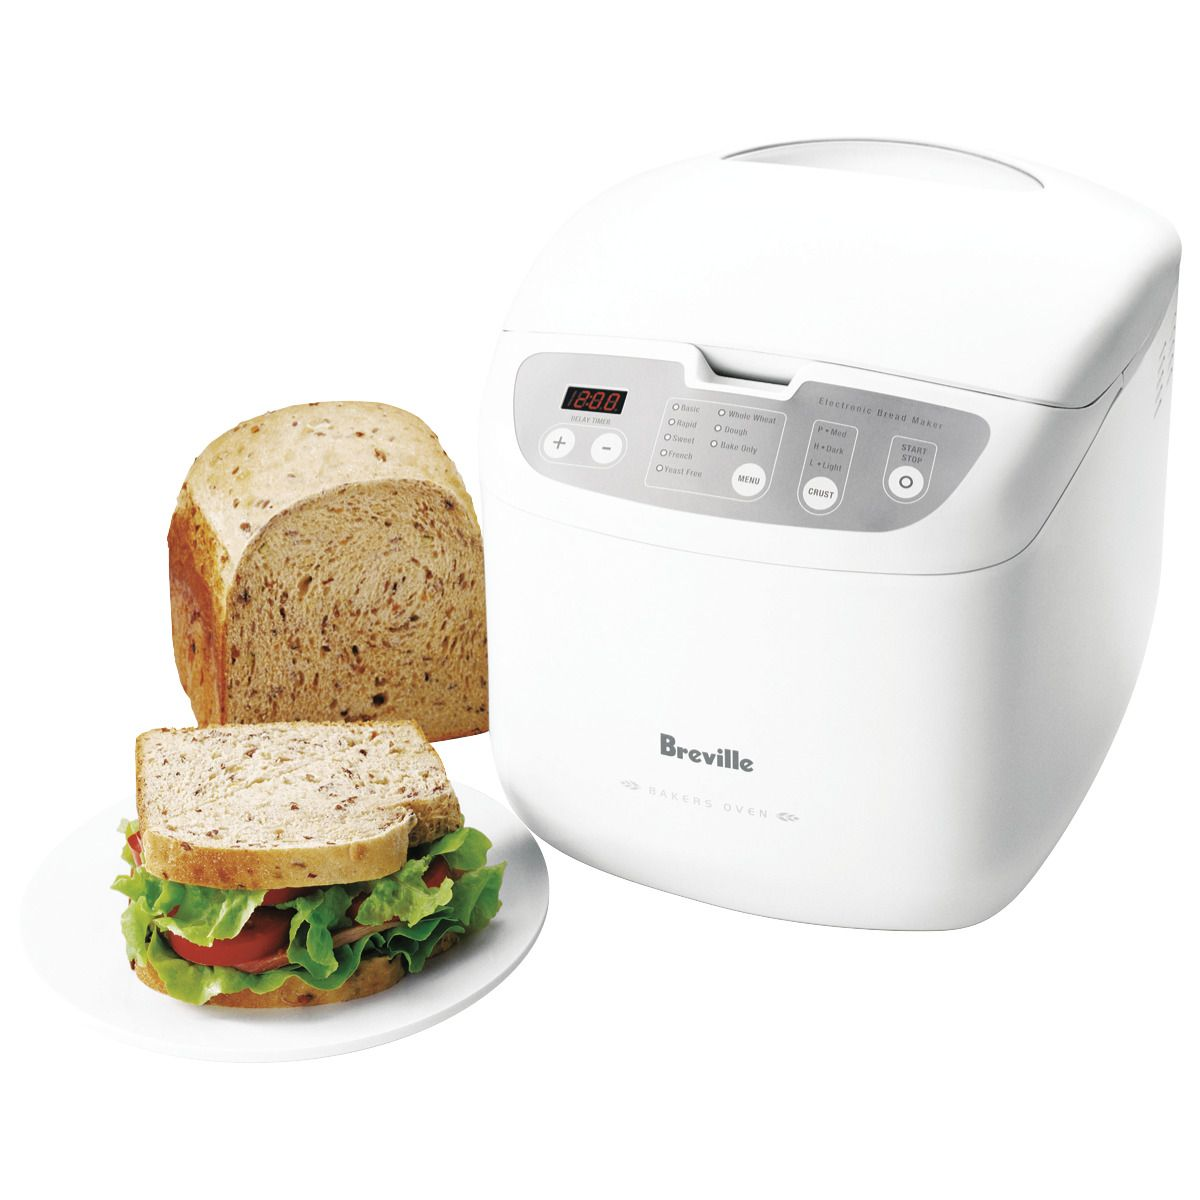 Shop Online For Breville Bbm100 Breville Baker S Oven Bread Maker And More At The Good Guys Grab A Bargain From Australia S Lea Bakers Oven Bread Maker Bakers